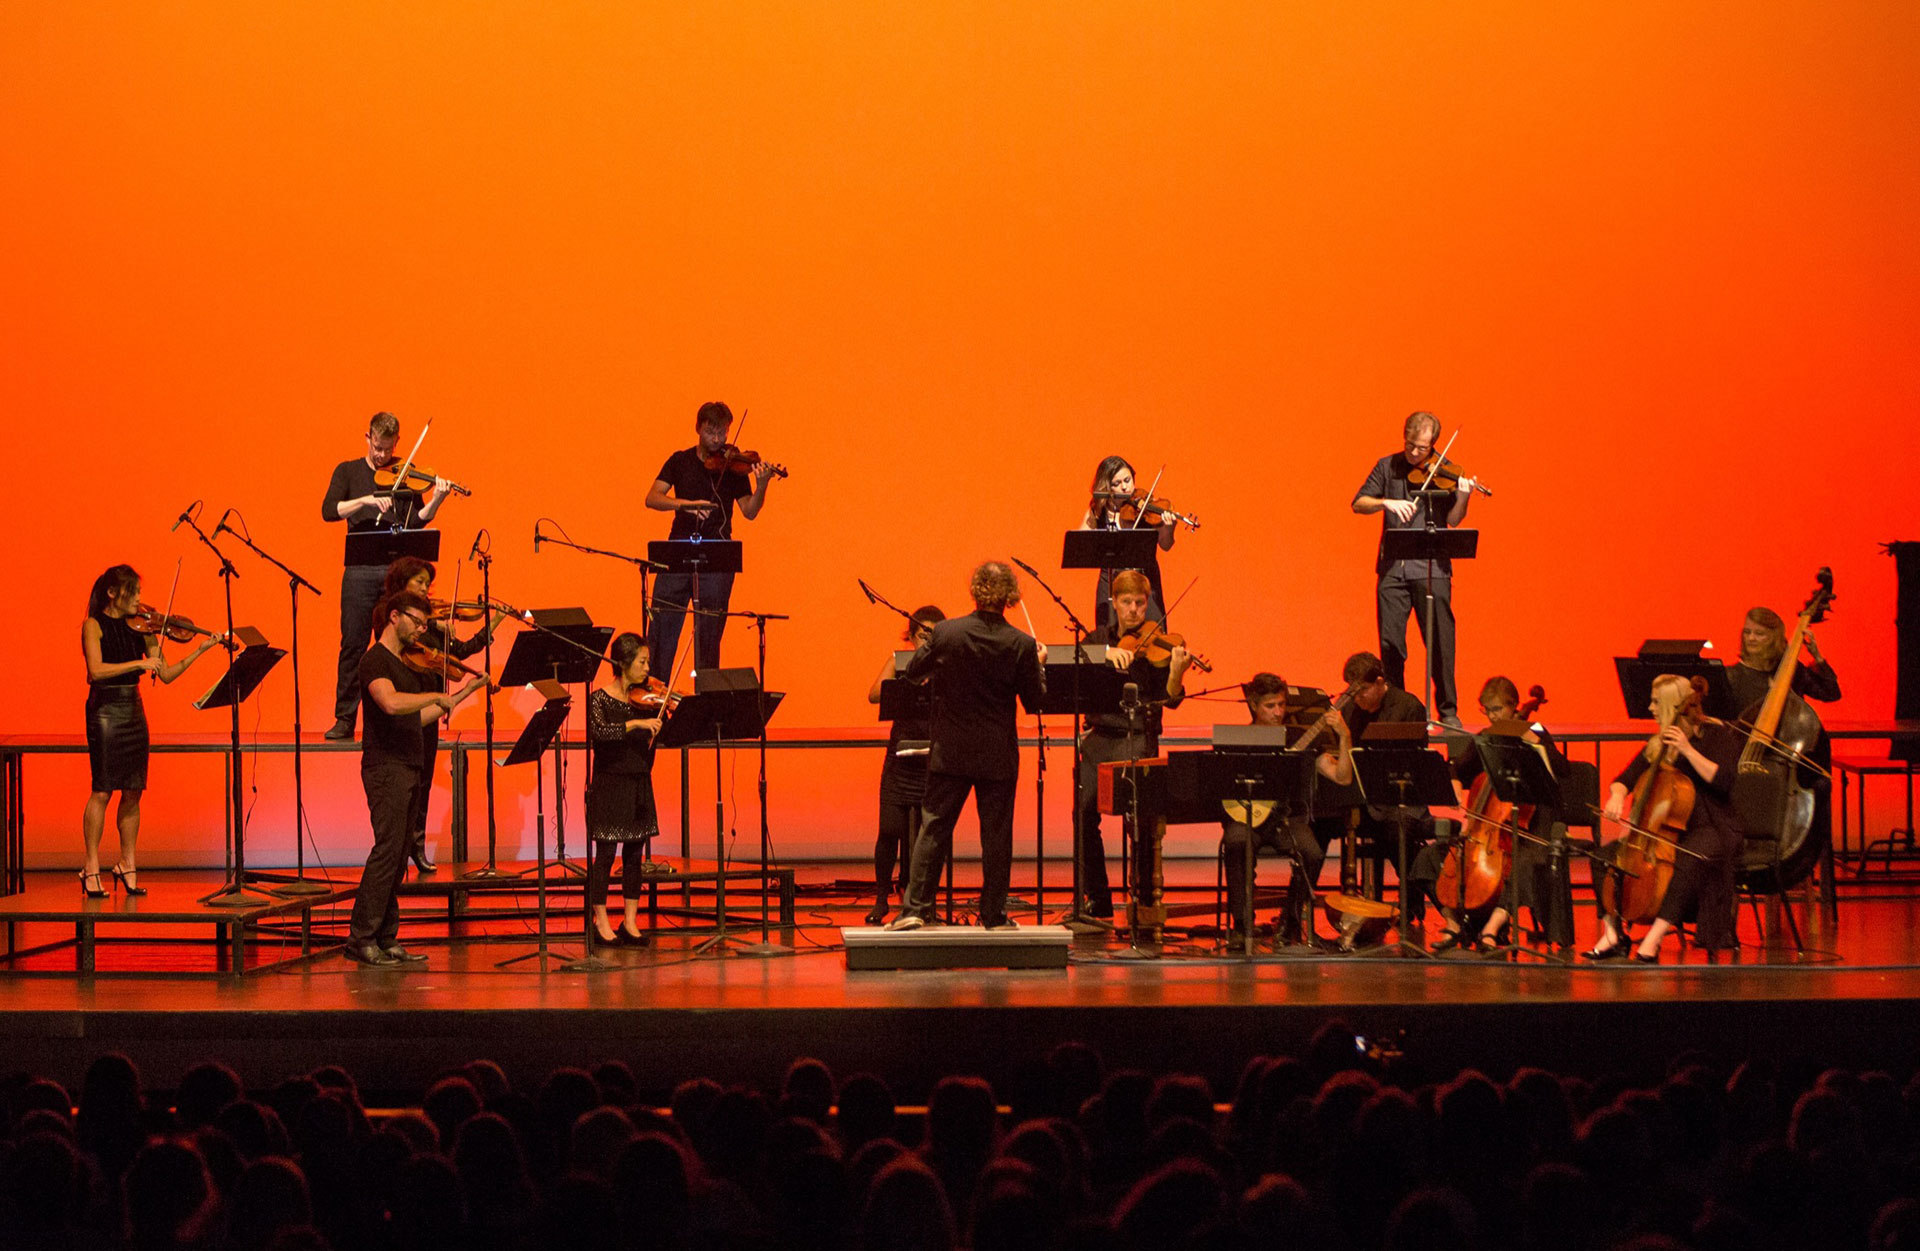 Mercury opens UHCL's theater season with 'battle of the bands'-style classical violin performance